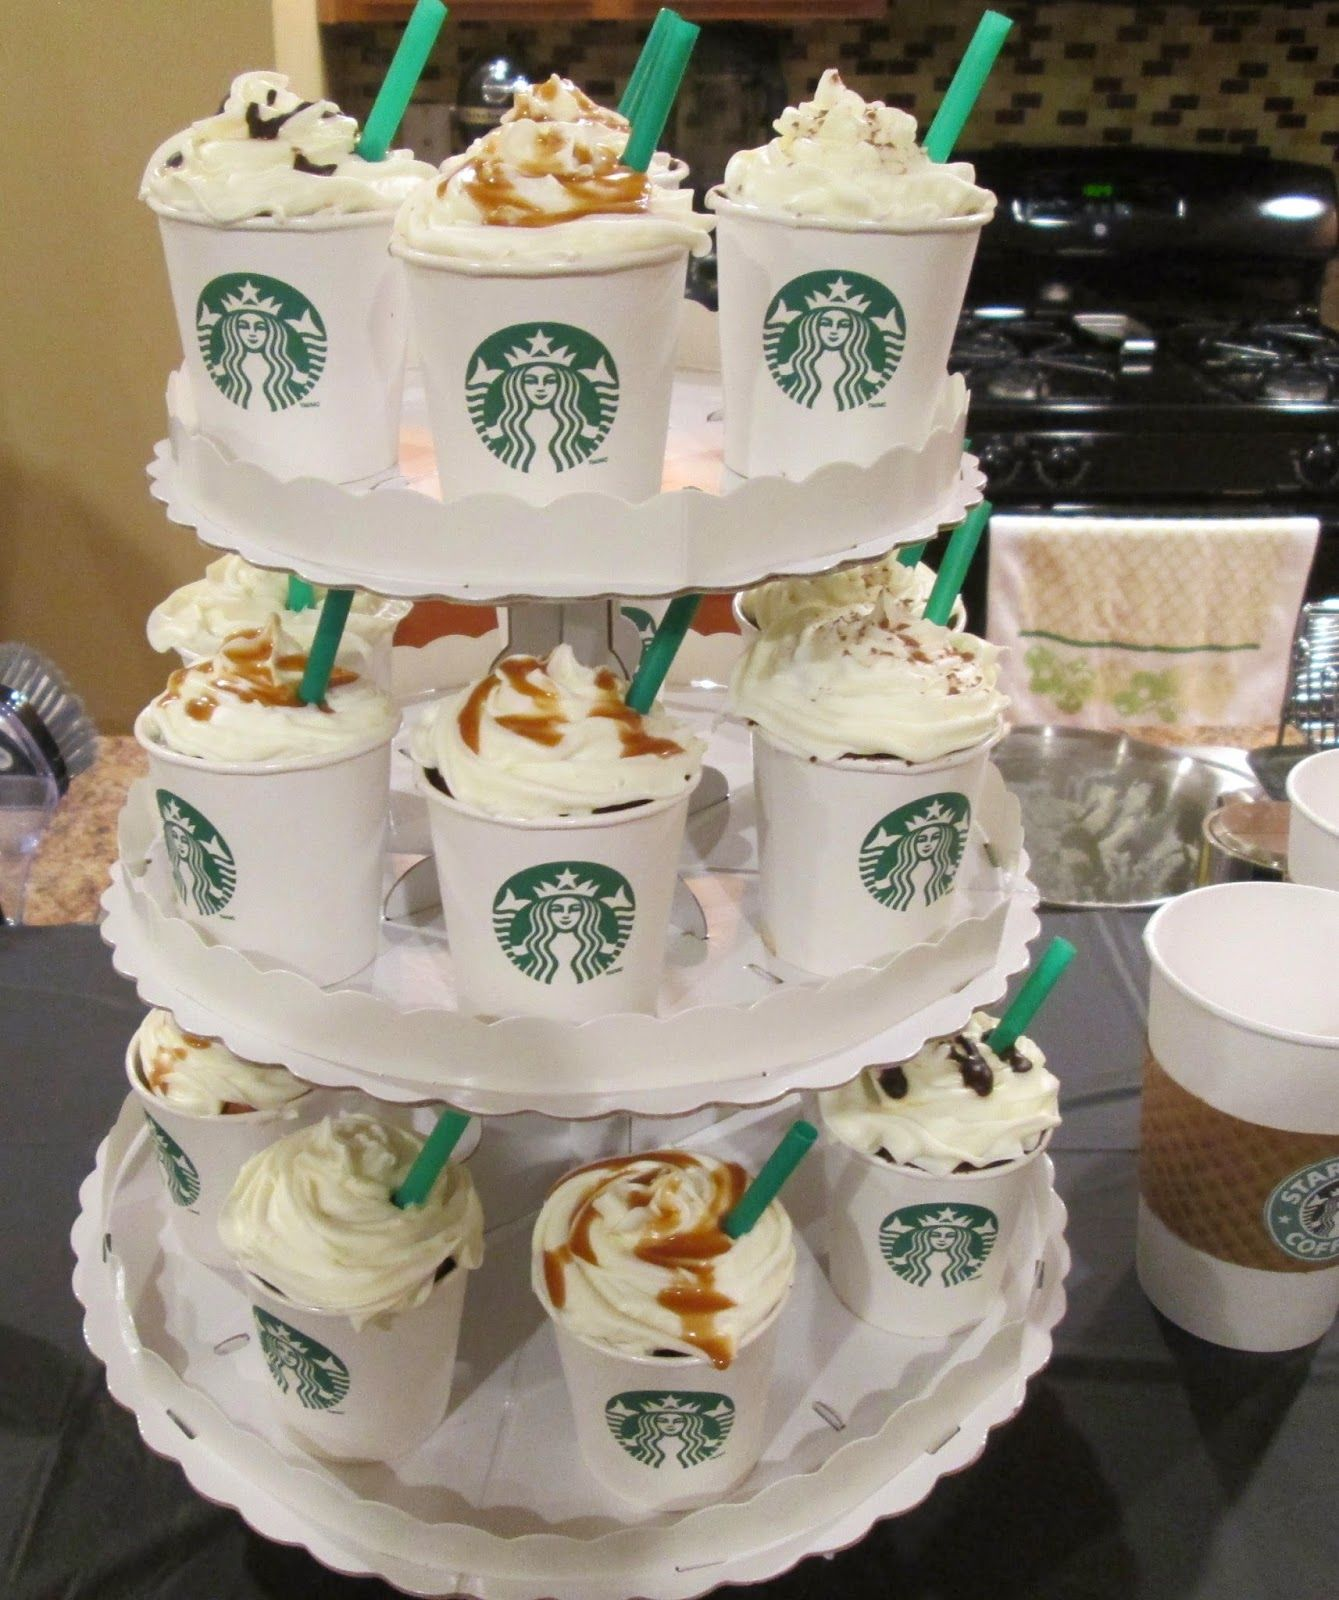 DIY cupcake frappuccinos for starbucks birthday party in